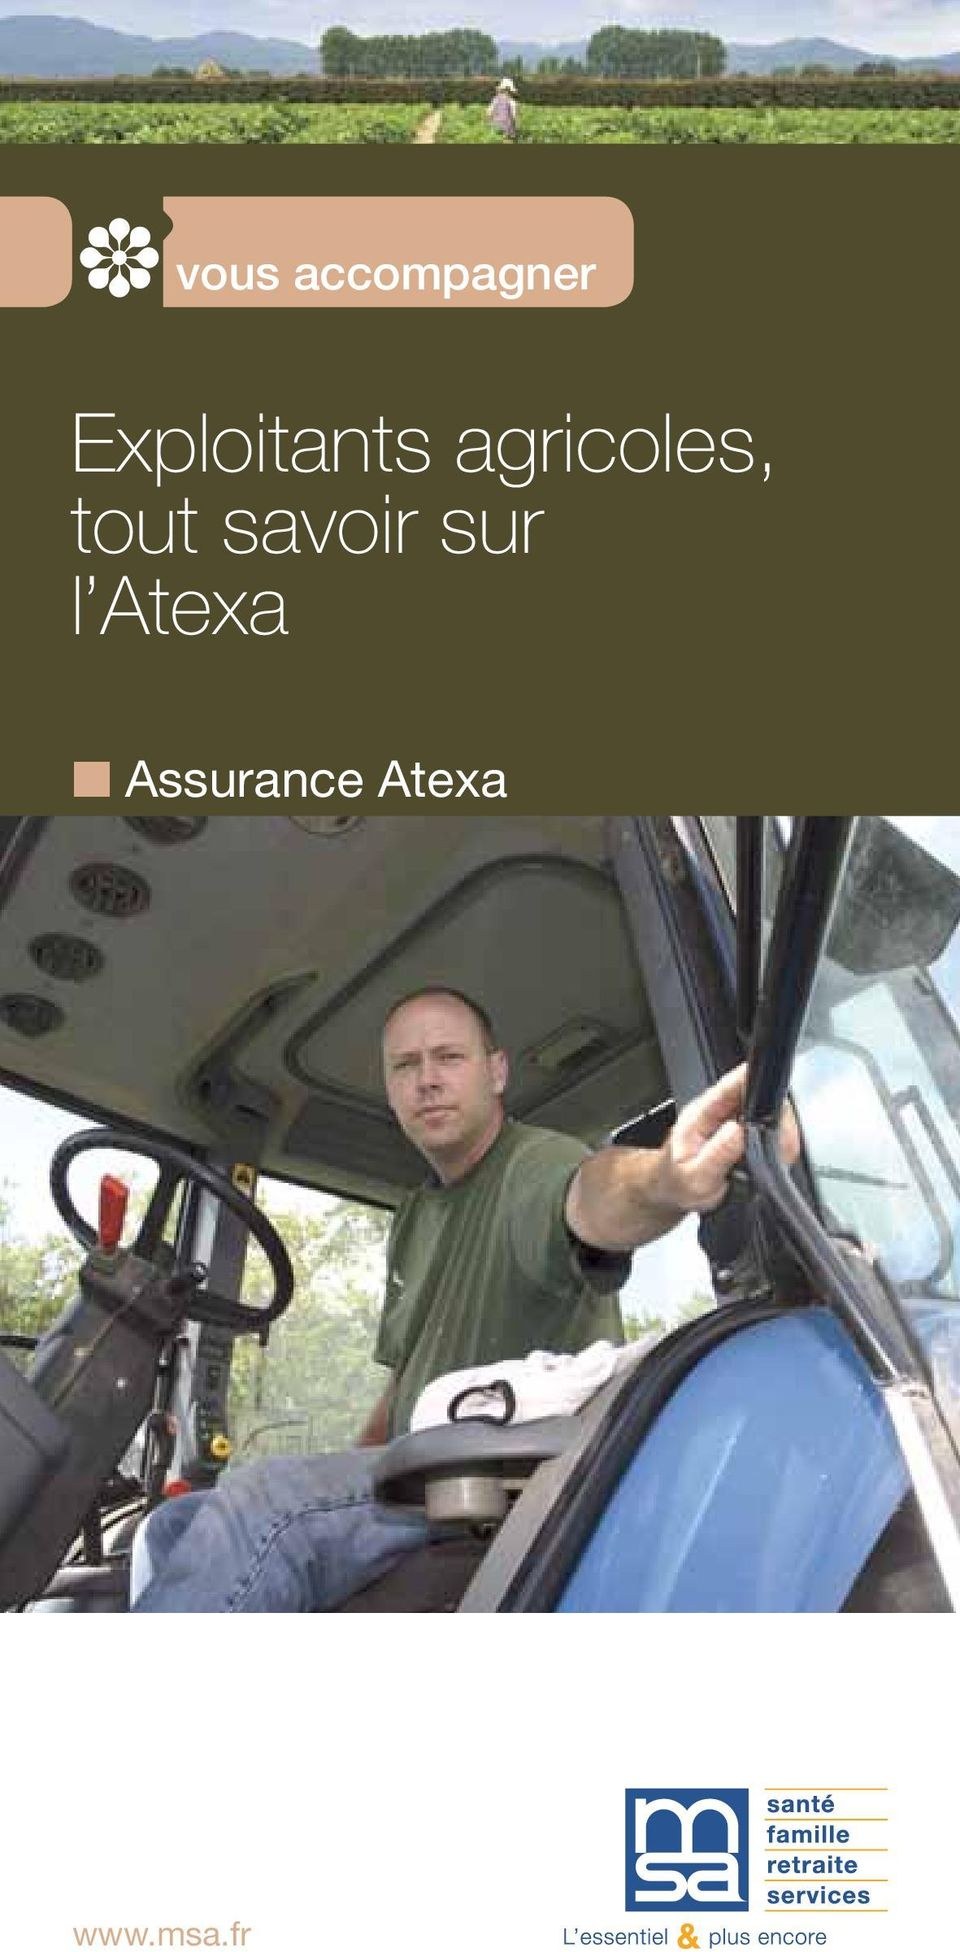 accompagner Exploitants agricoles,